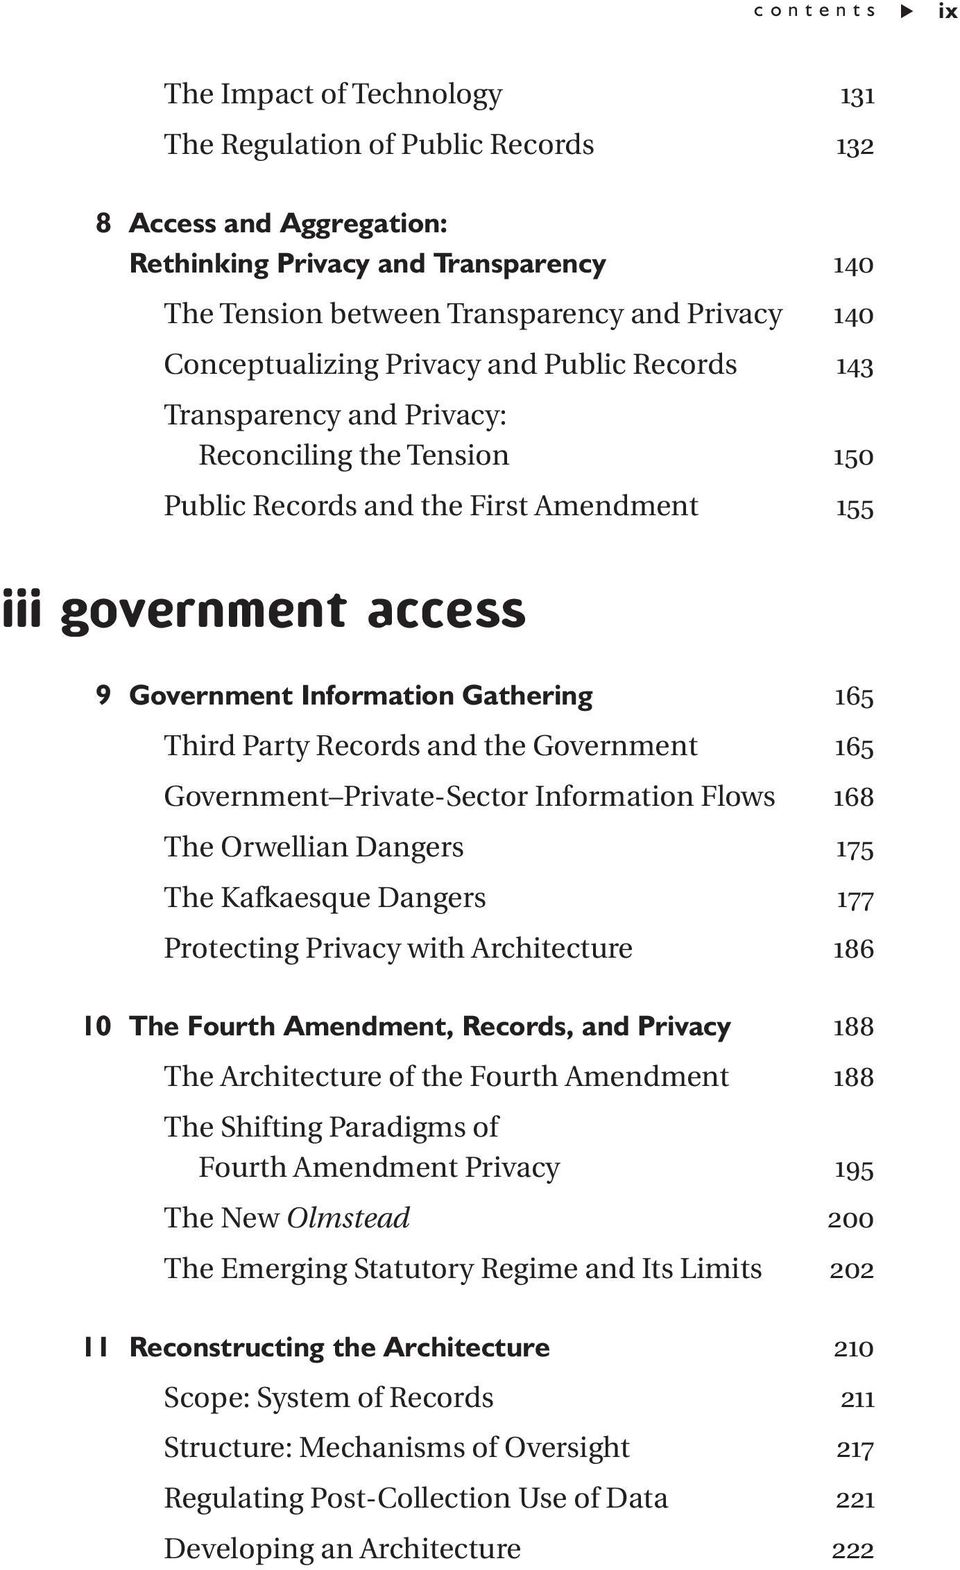 Gathering 165 Third Party Records and the Government 165 Government Private-Sector Information Flows 168 The Orwellian Dangers 175 The Kafkaesque Dangers 177 Protecting Privacy with Architecture 186